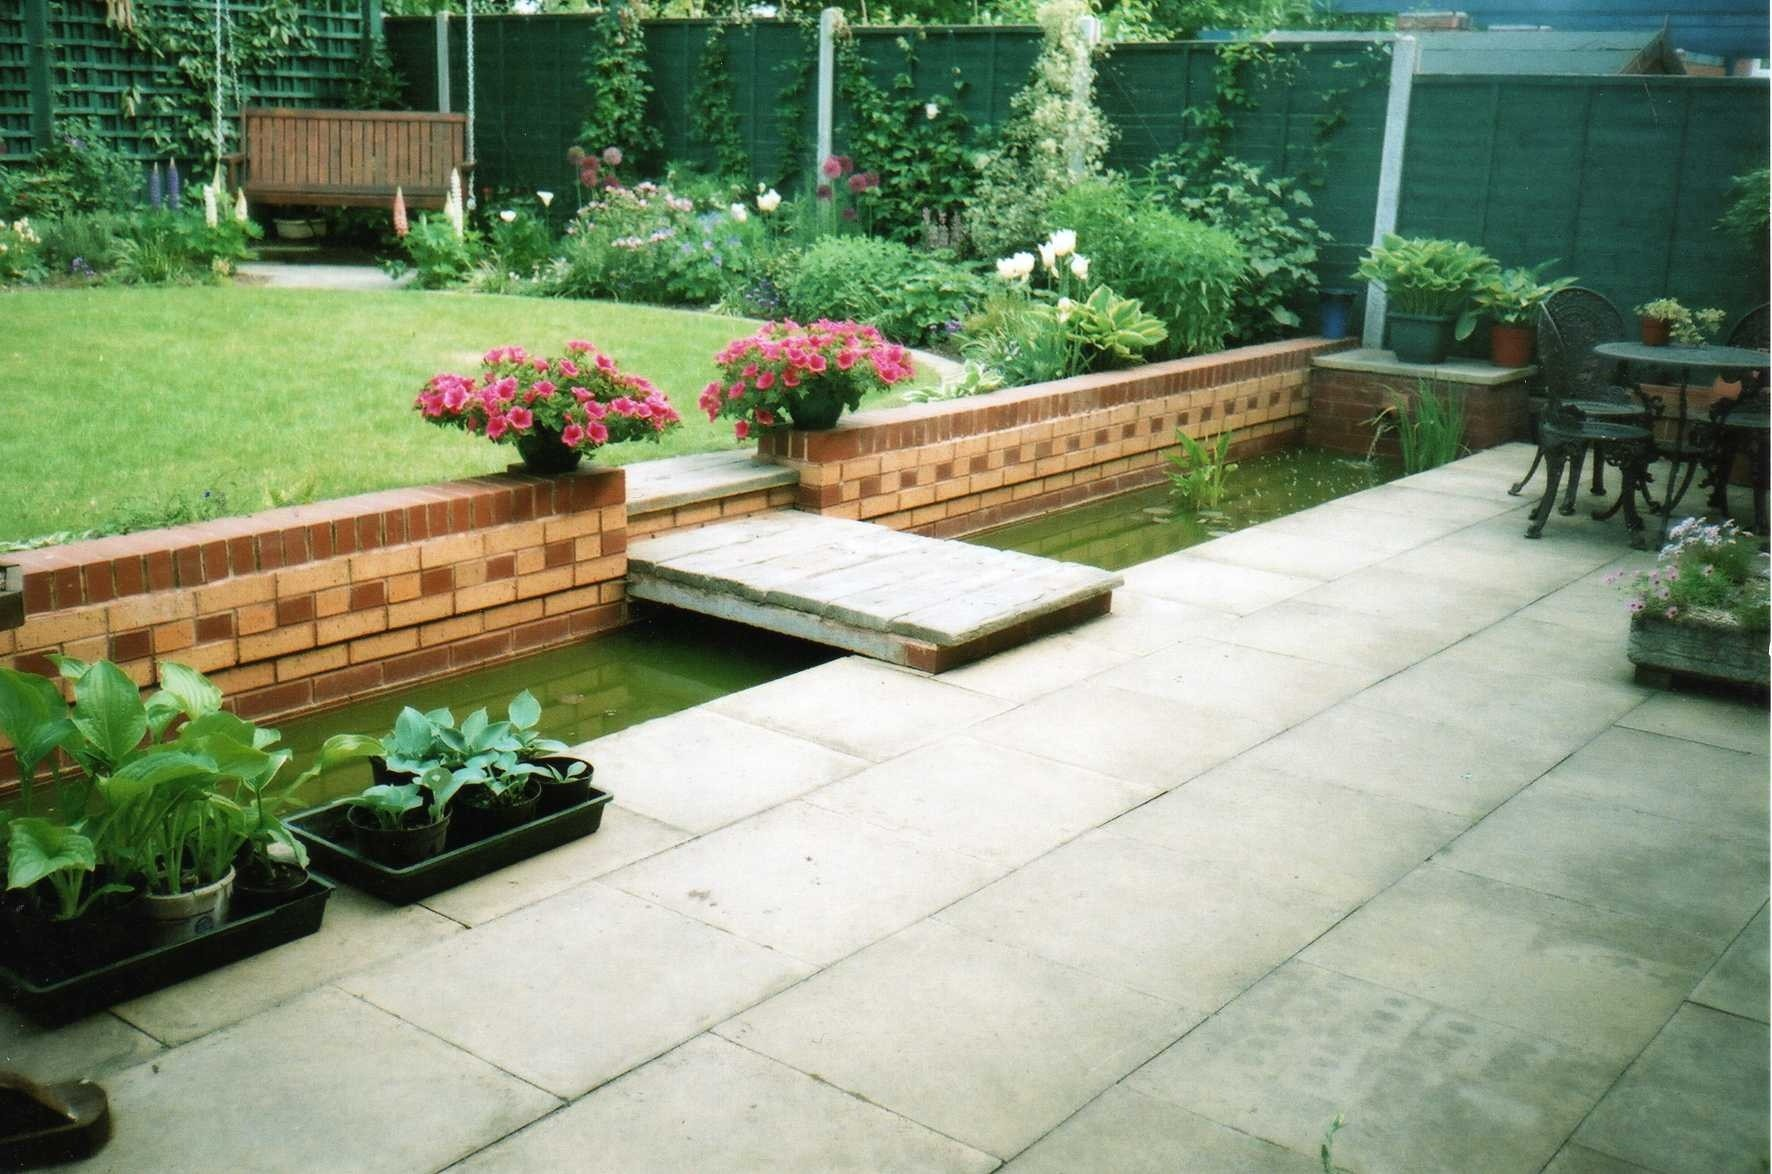 Koi pond specialists parkes quality landscaping services ltd for Garden decking with pond